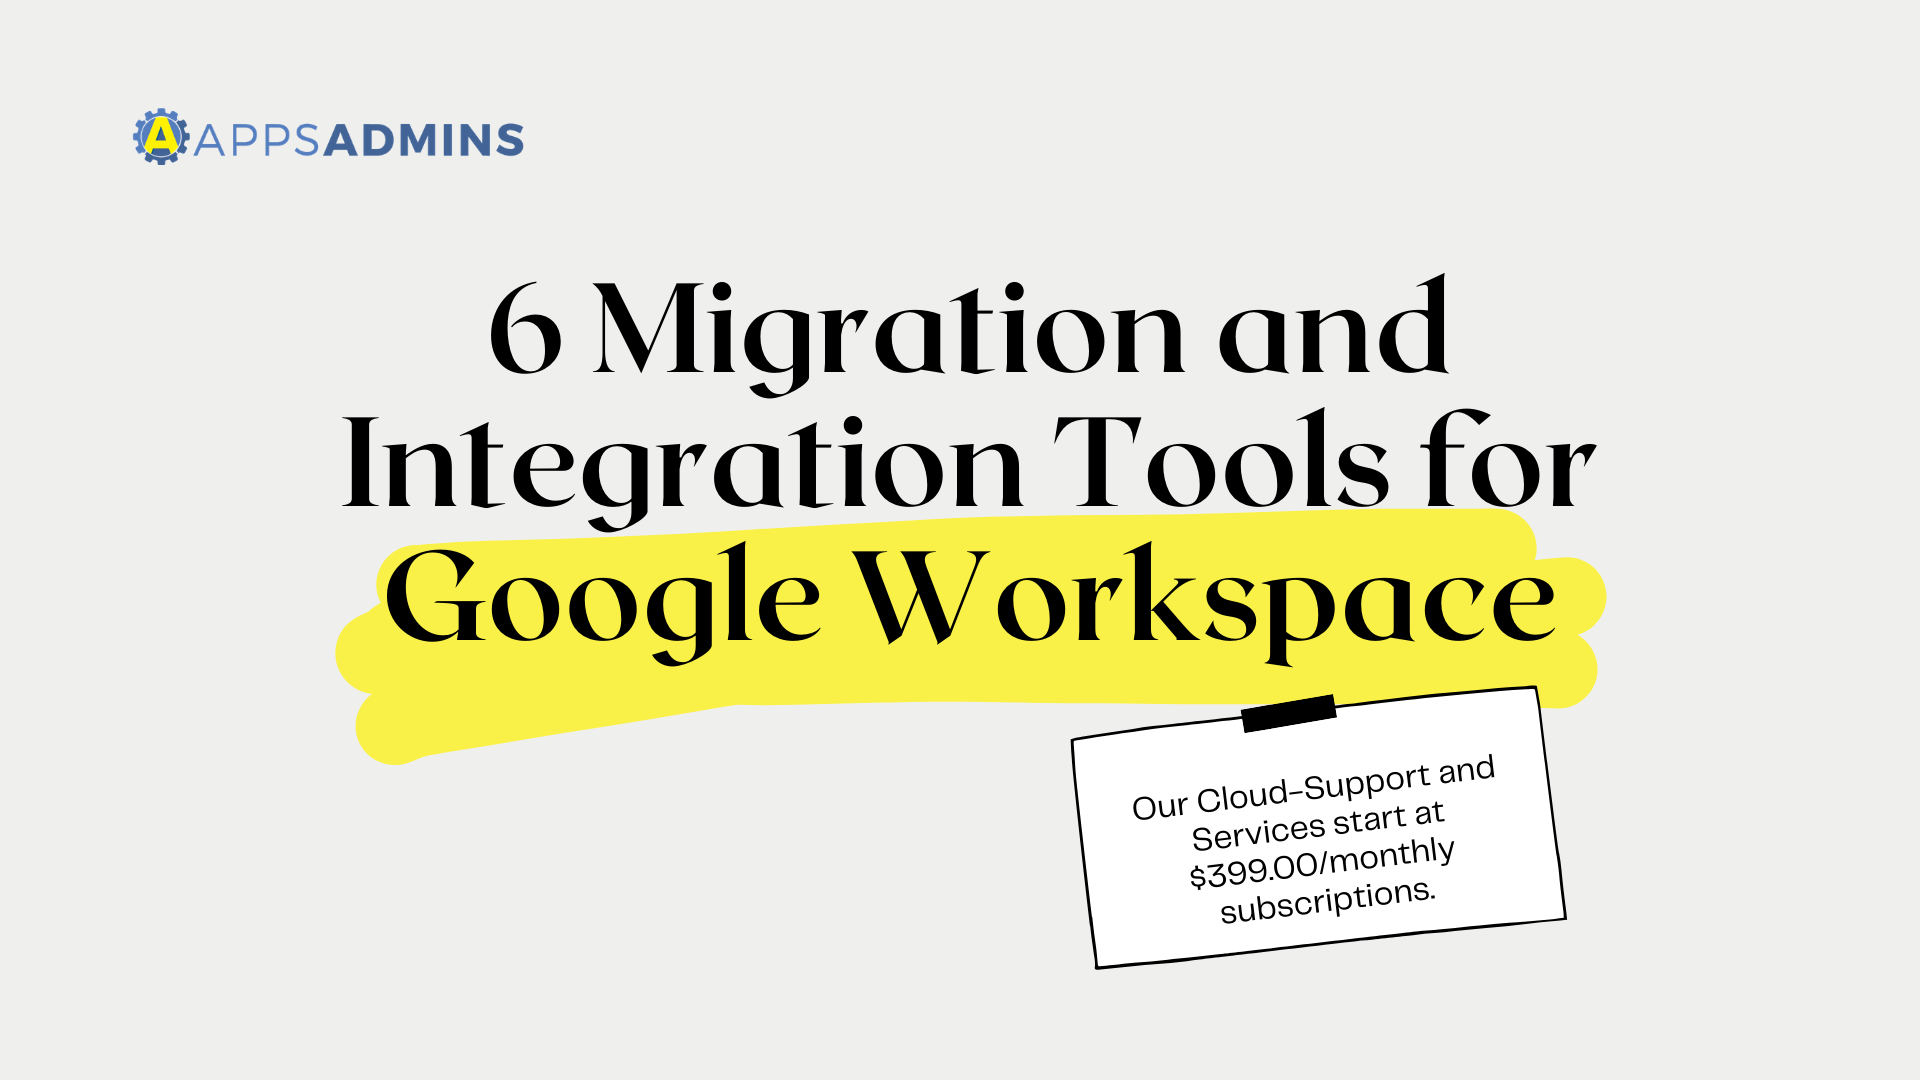 6 Migration and Integration Tools for Google Workspace